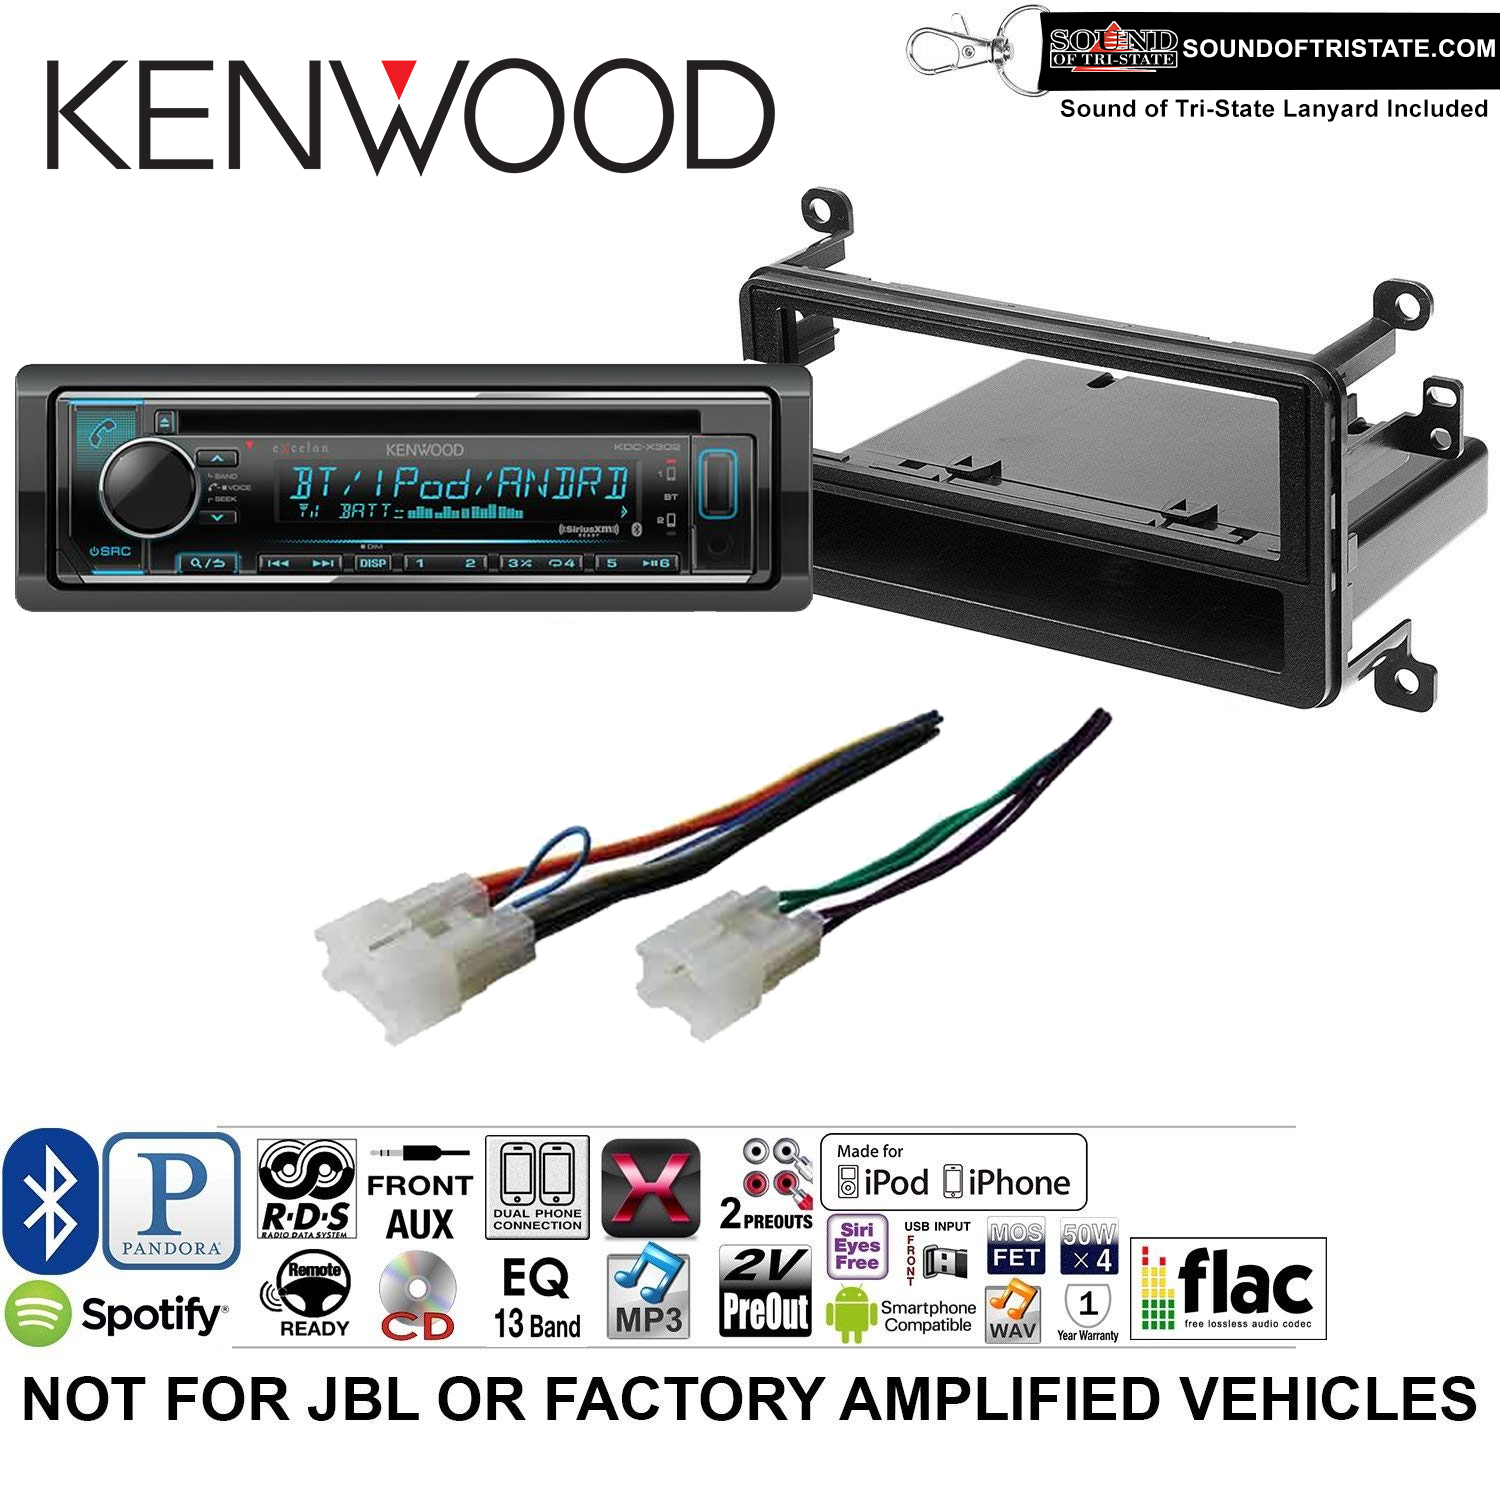 Kenwood KDCX302 Double Din Radio Install Kit with Bluetooth, CD Player, USB/AUX Fits 2001-2005 Toyota RAV4 and a SOTS lanyard included